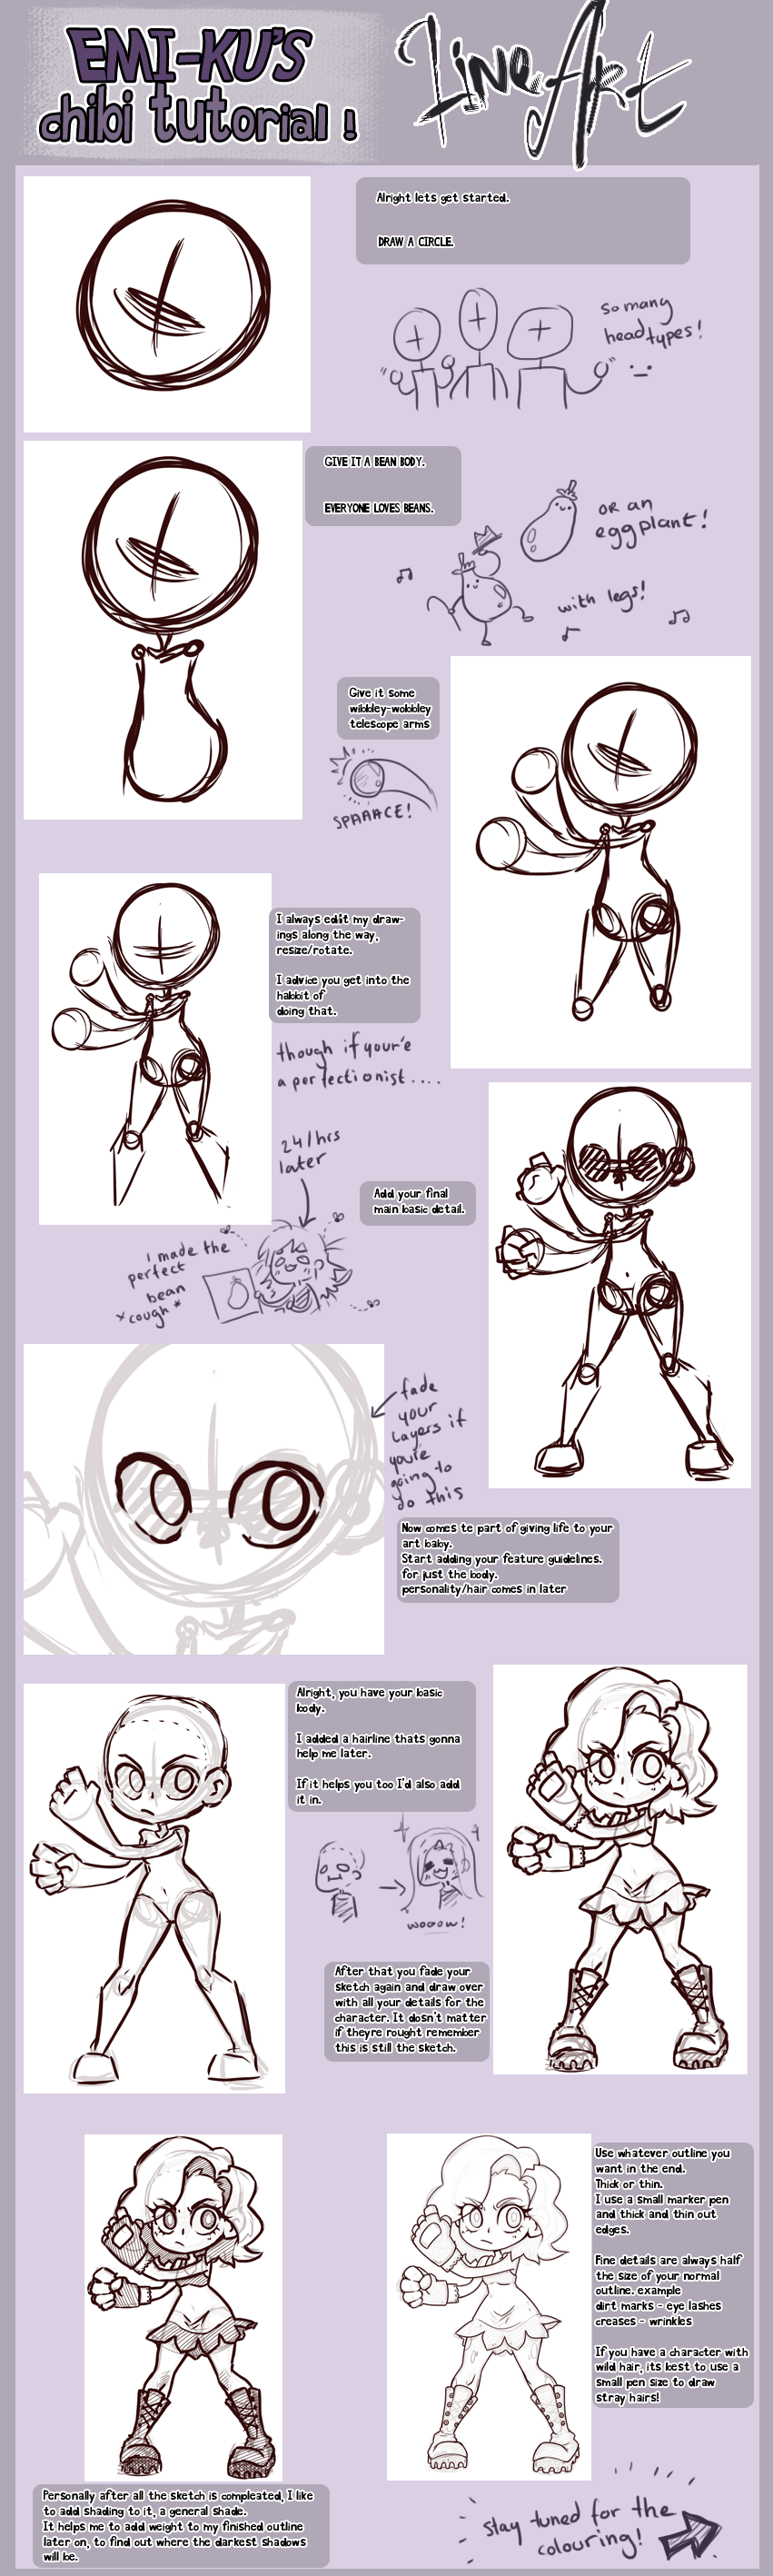 Line Art Corel Draw Tutorial : Chibi tutorial lineart by emi ku on deviantart